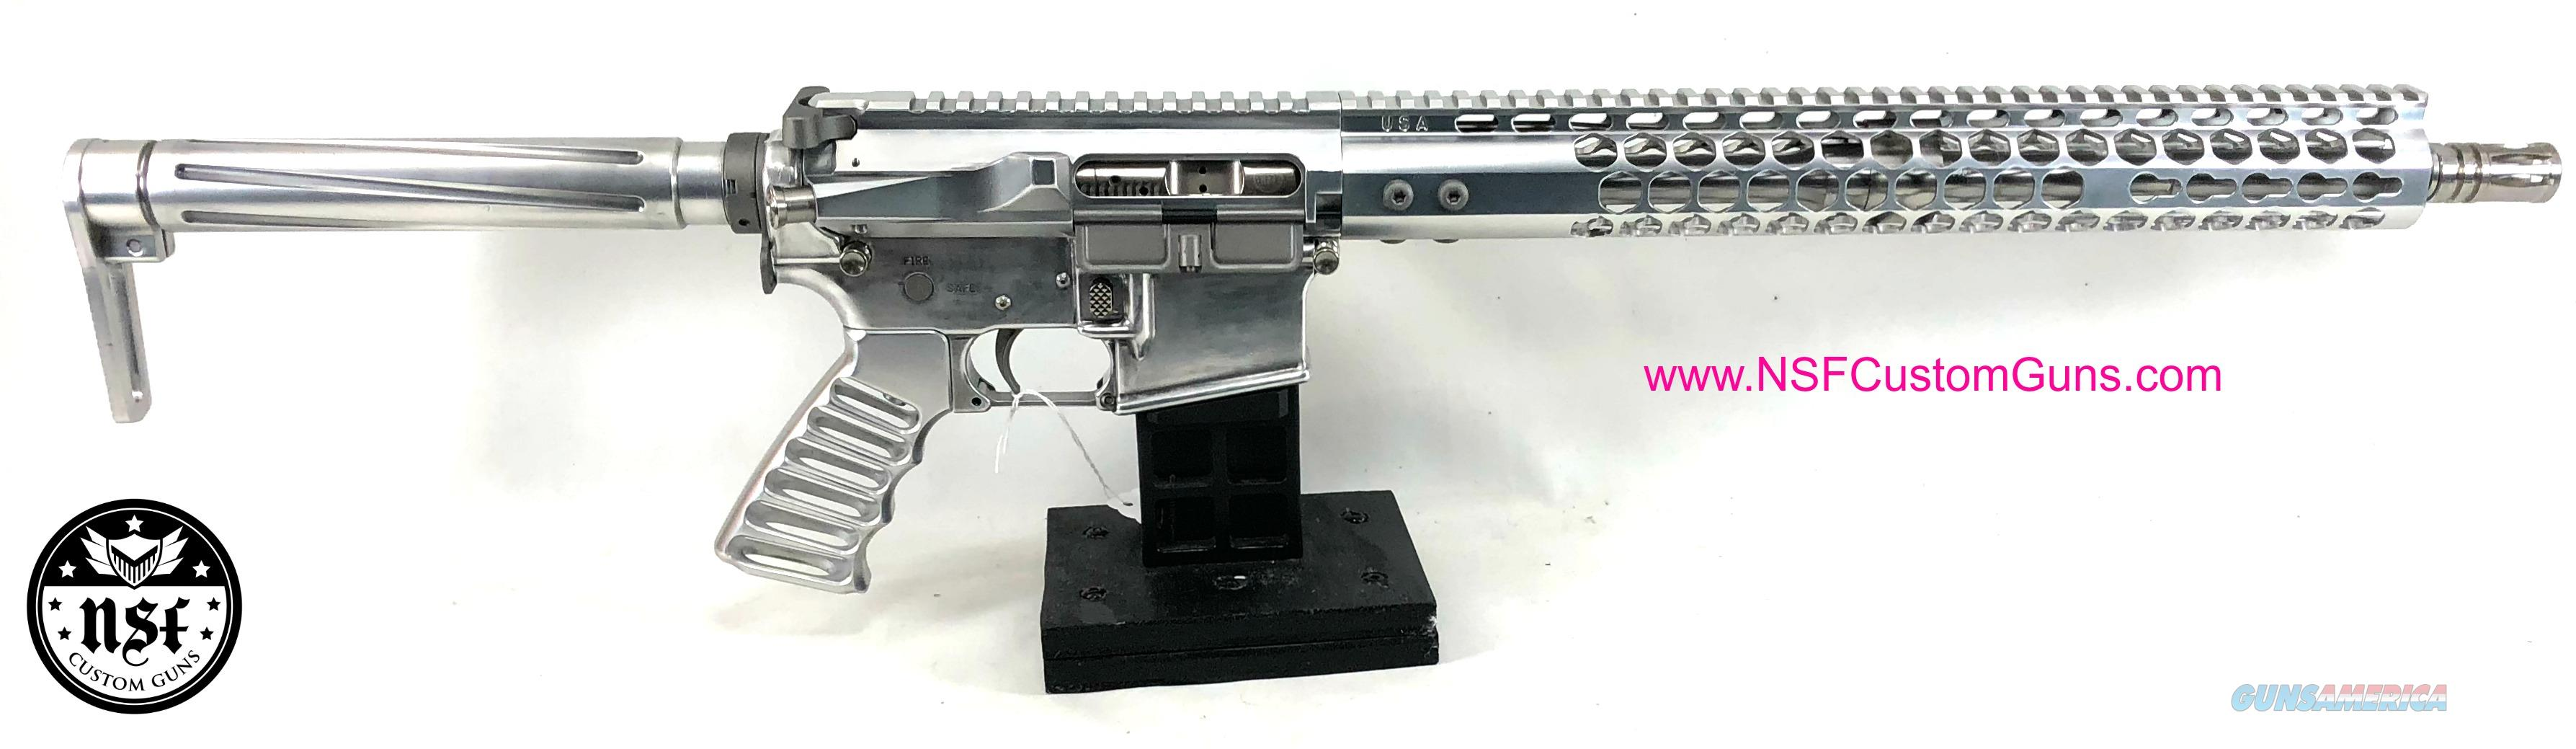 NSF Custom Guns SS-15 Polished Aluminum AR-15